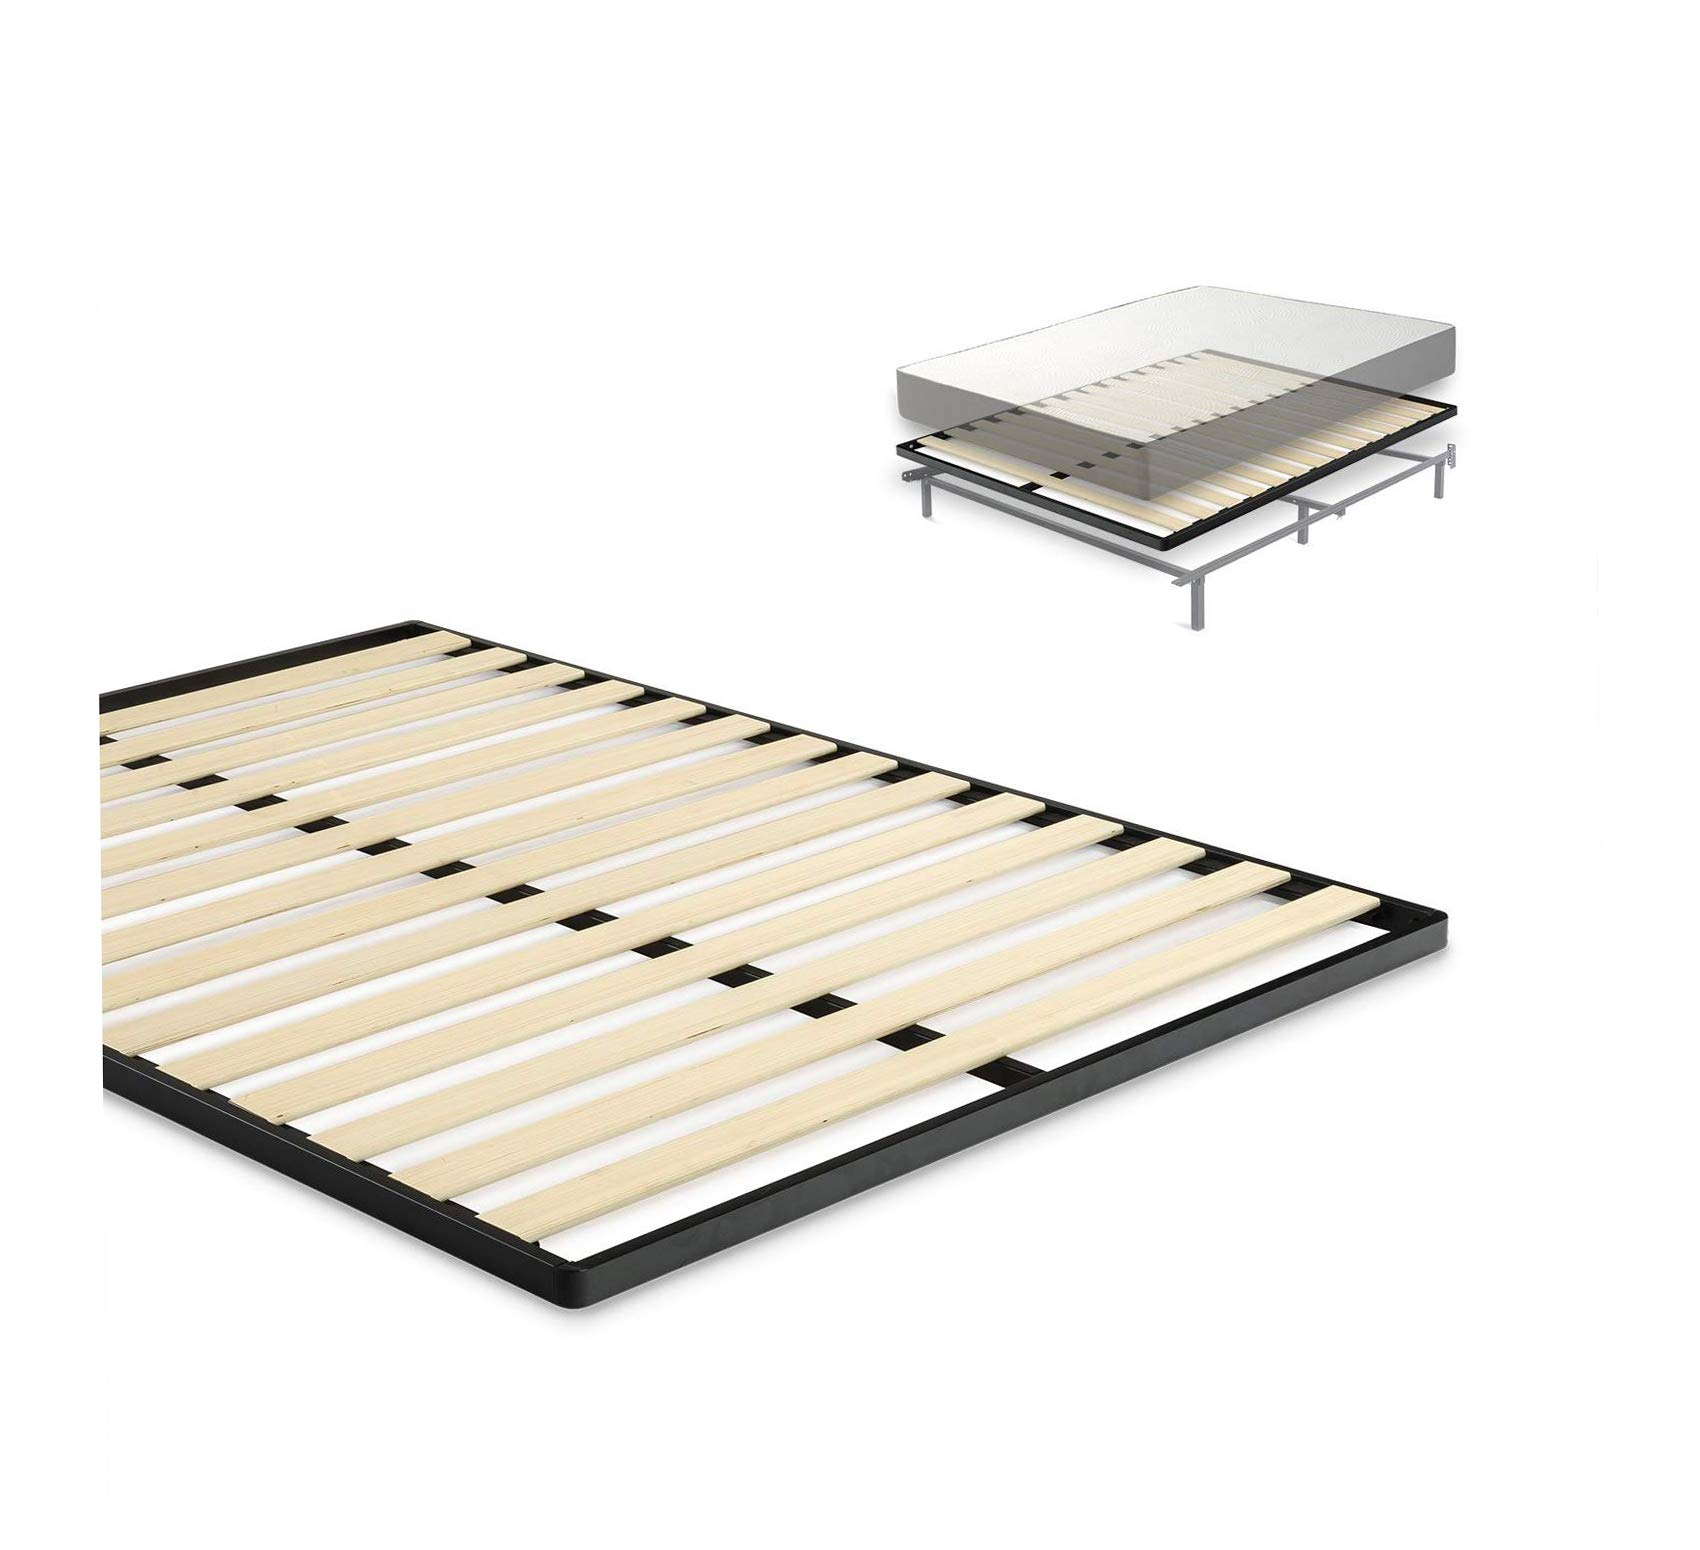 Easy Assembly Wood Slat 1.6 Inch Bunkie Board/Bed Slat Replacement, Full Comfy Living Home Décor Furniture Heavy Duty